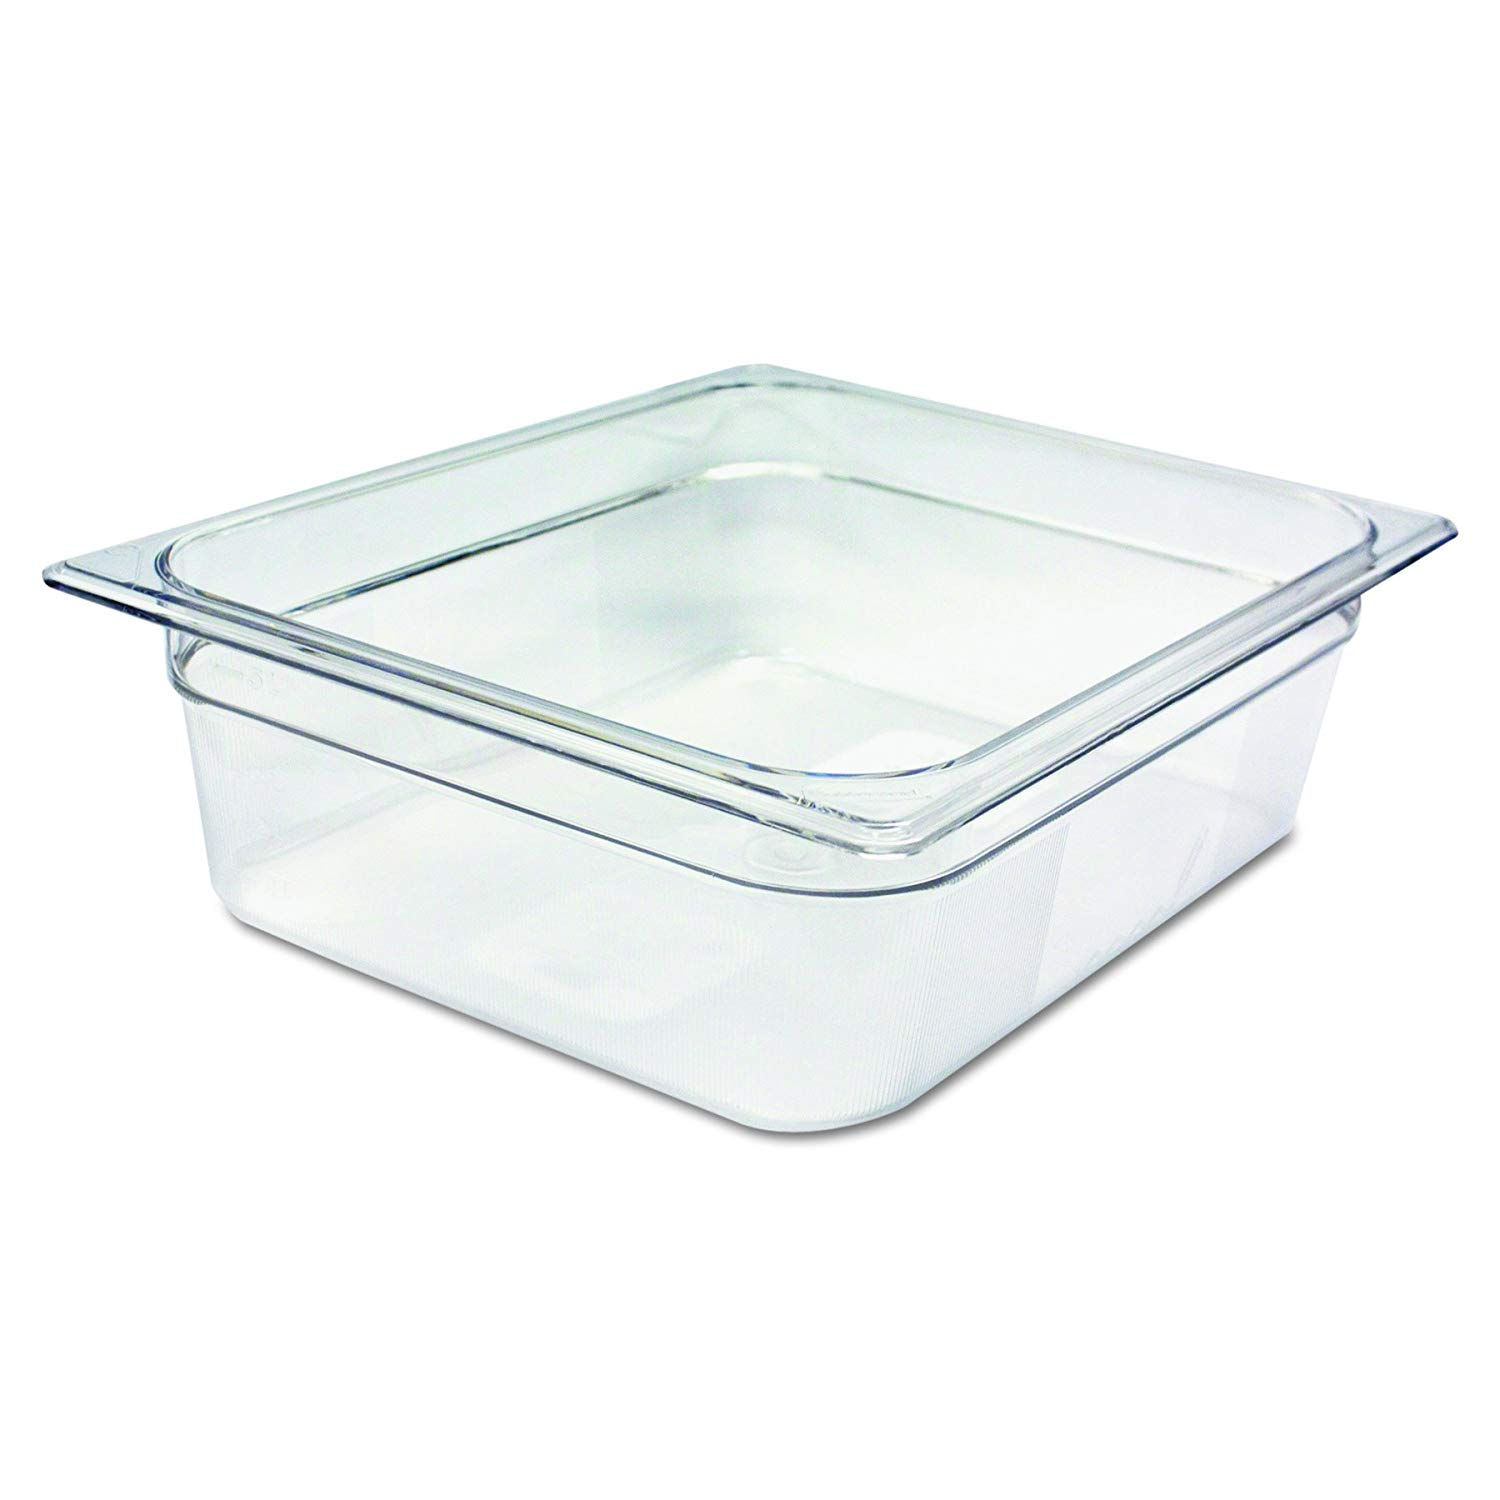 RECIPIENTE FOOD PAN 6LTS. GN1/2 (32,5 X 26,5CM)